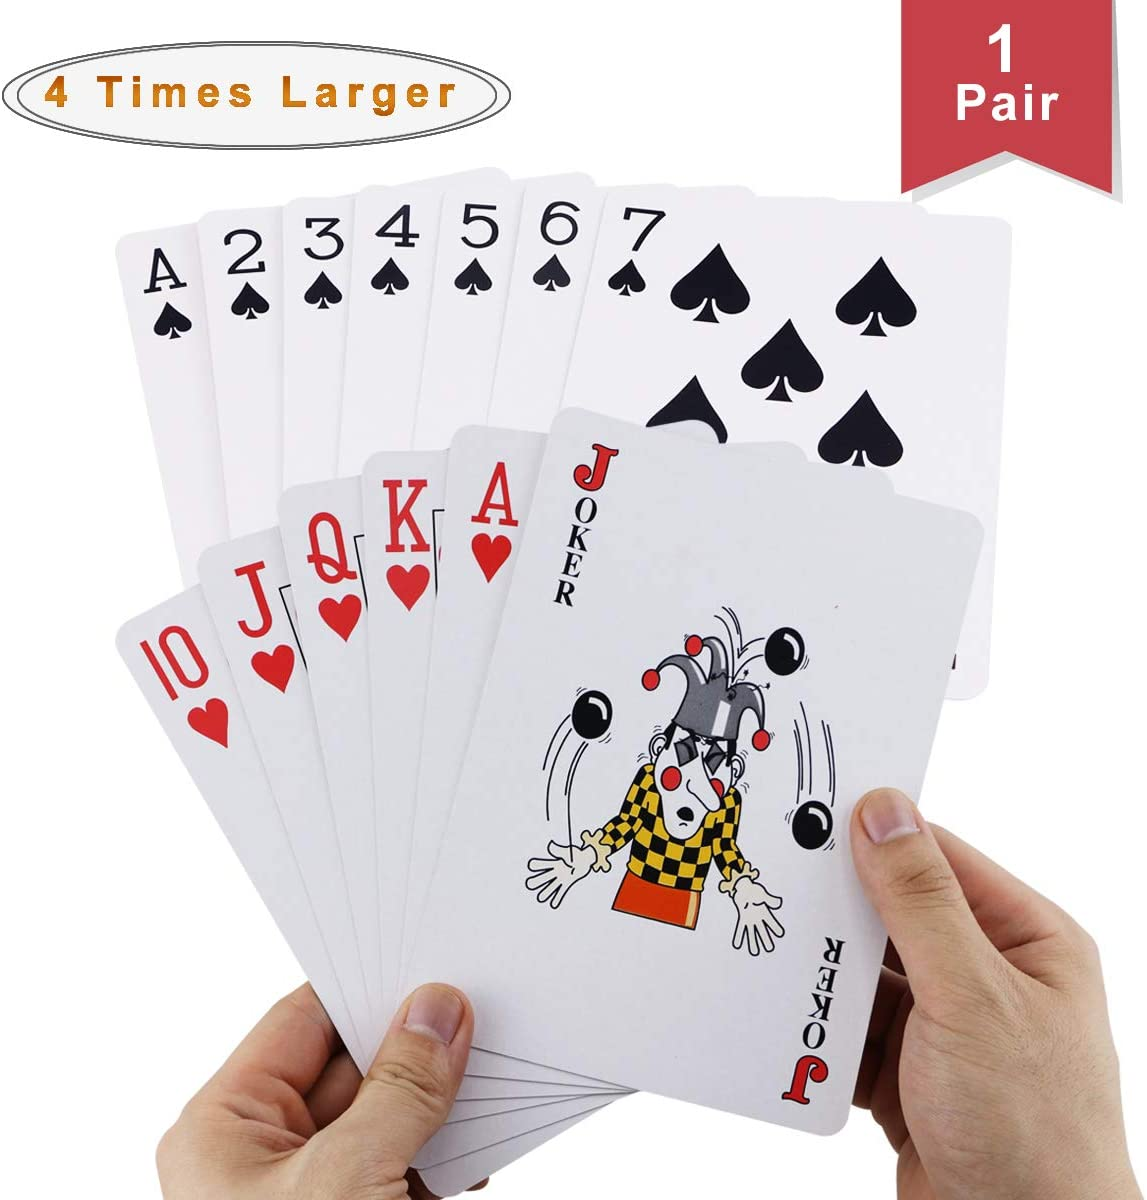 Faxco 6.6'' x 4.6'' Large Poker,Four Times Large Poker,Jumbo Deck of Big Playing Cards Fun Full Poker